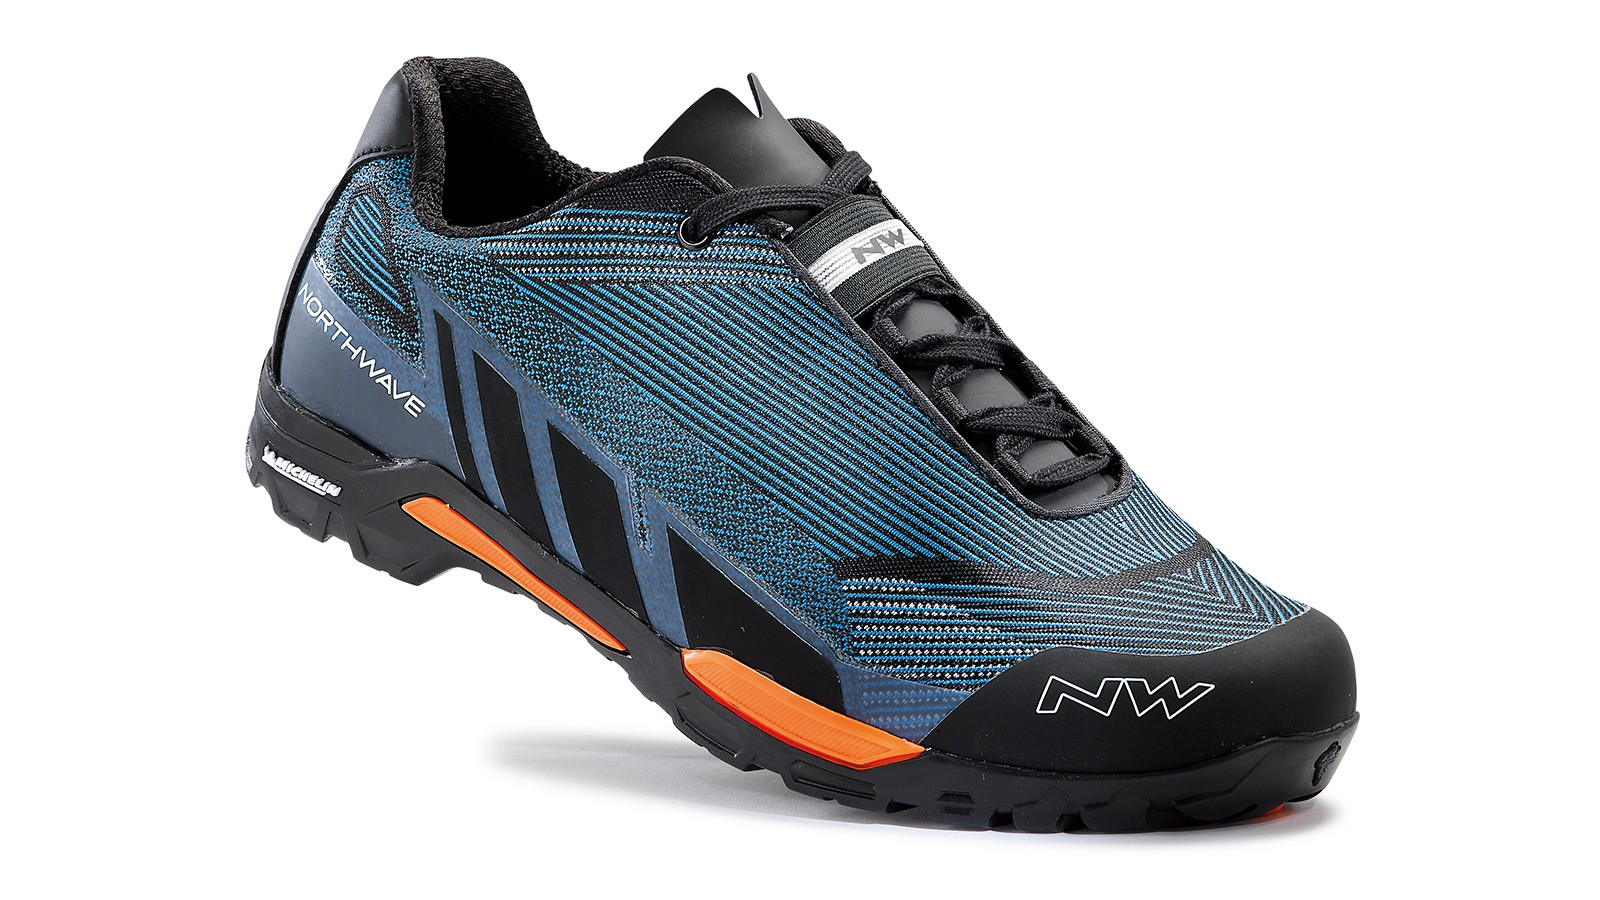 The Outcross Knit is claimed to be the first knitted shoe in the cycling industry